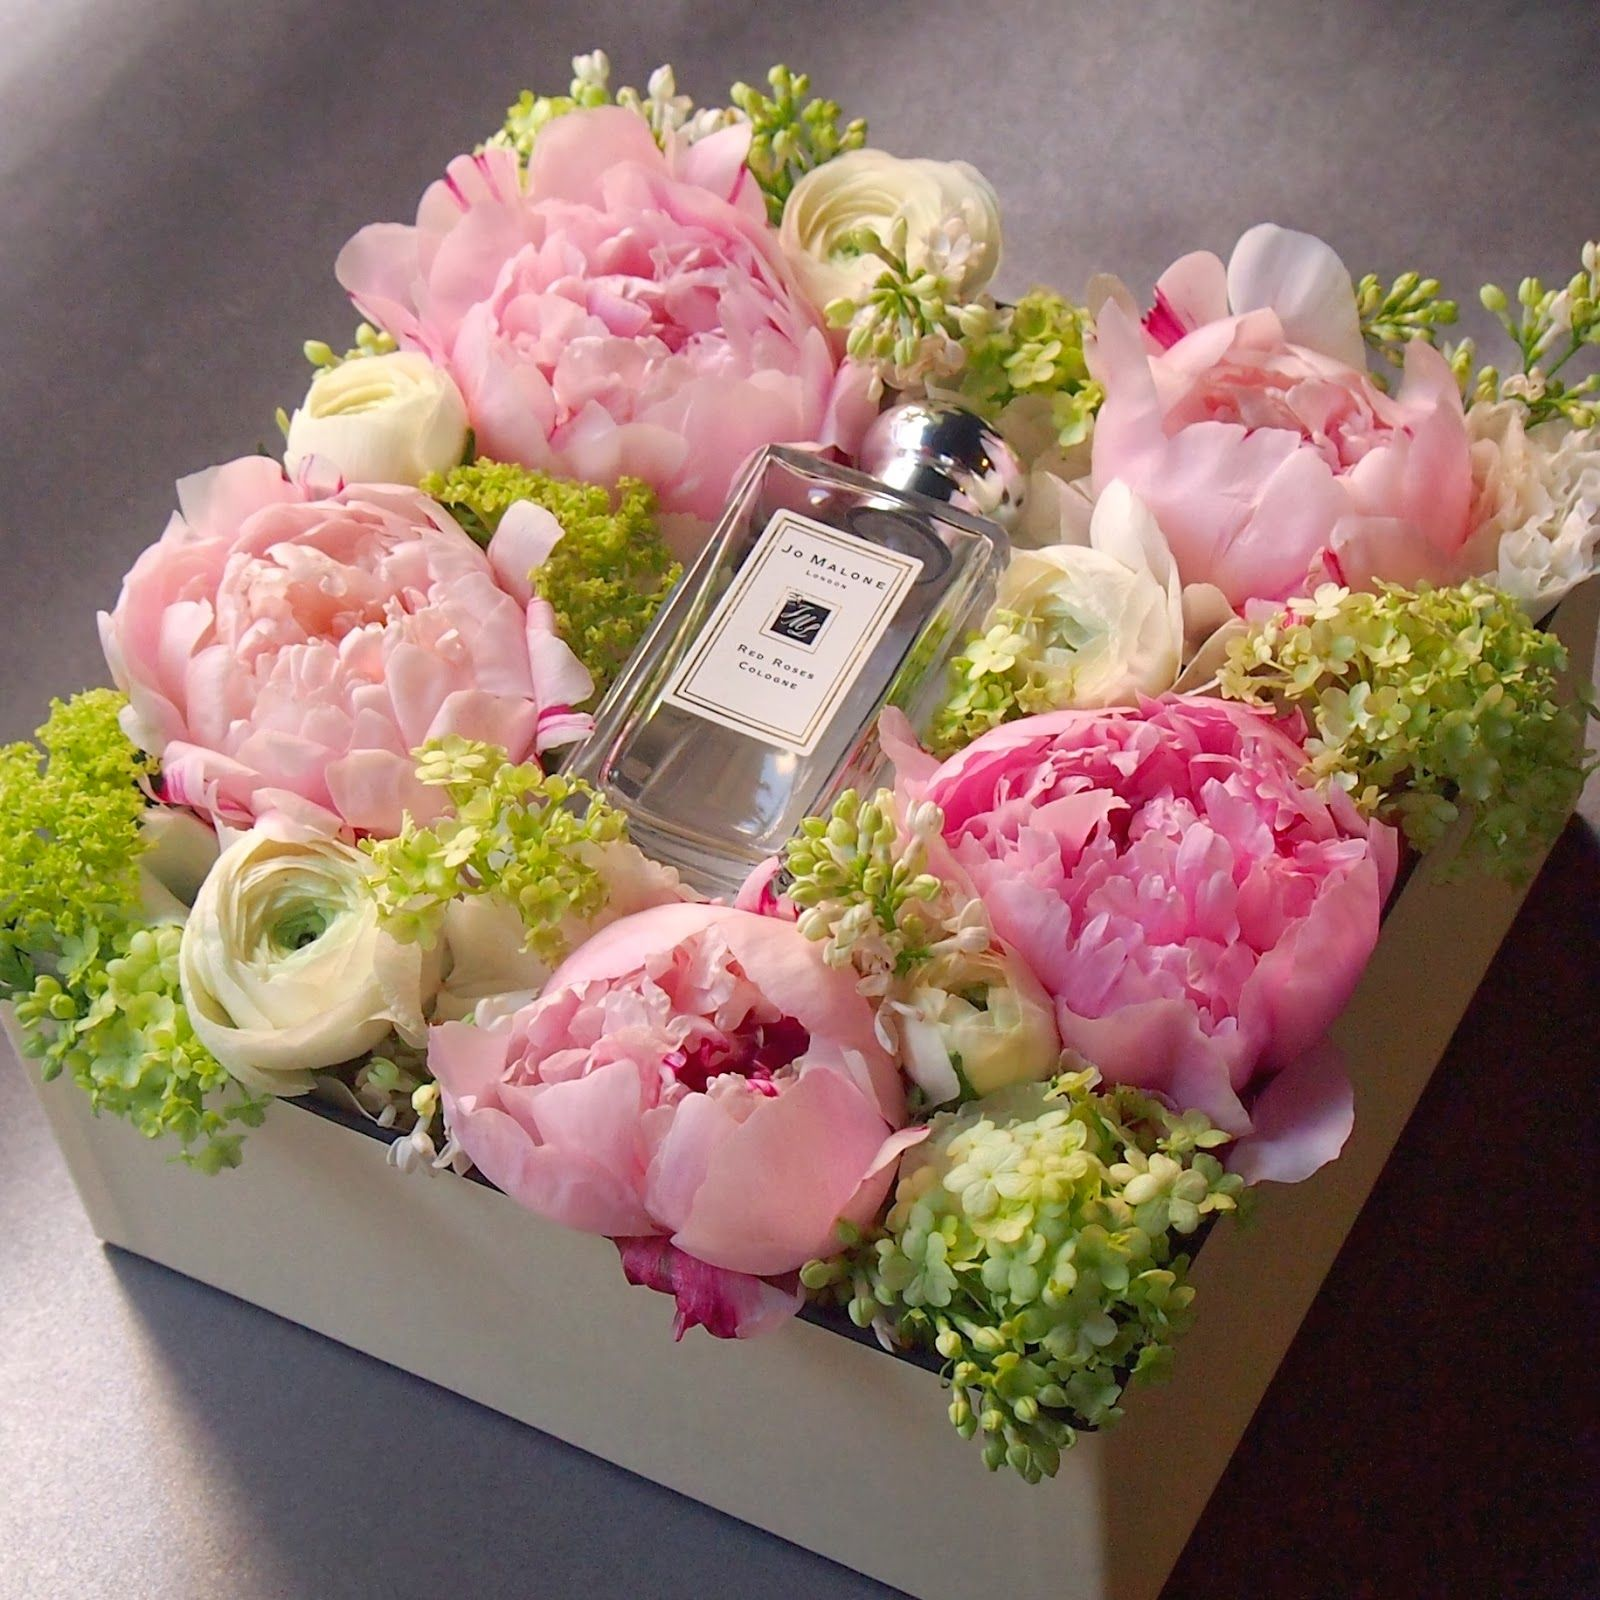 Jf floral couture discover the perfect valentines gift with jo jf floral couture discover the perfect valentines gift with jo malone london the one izmirmasajfo